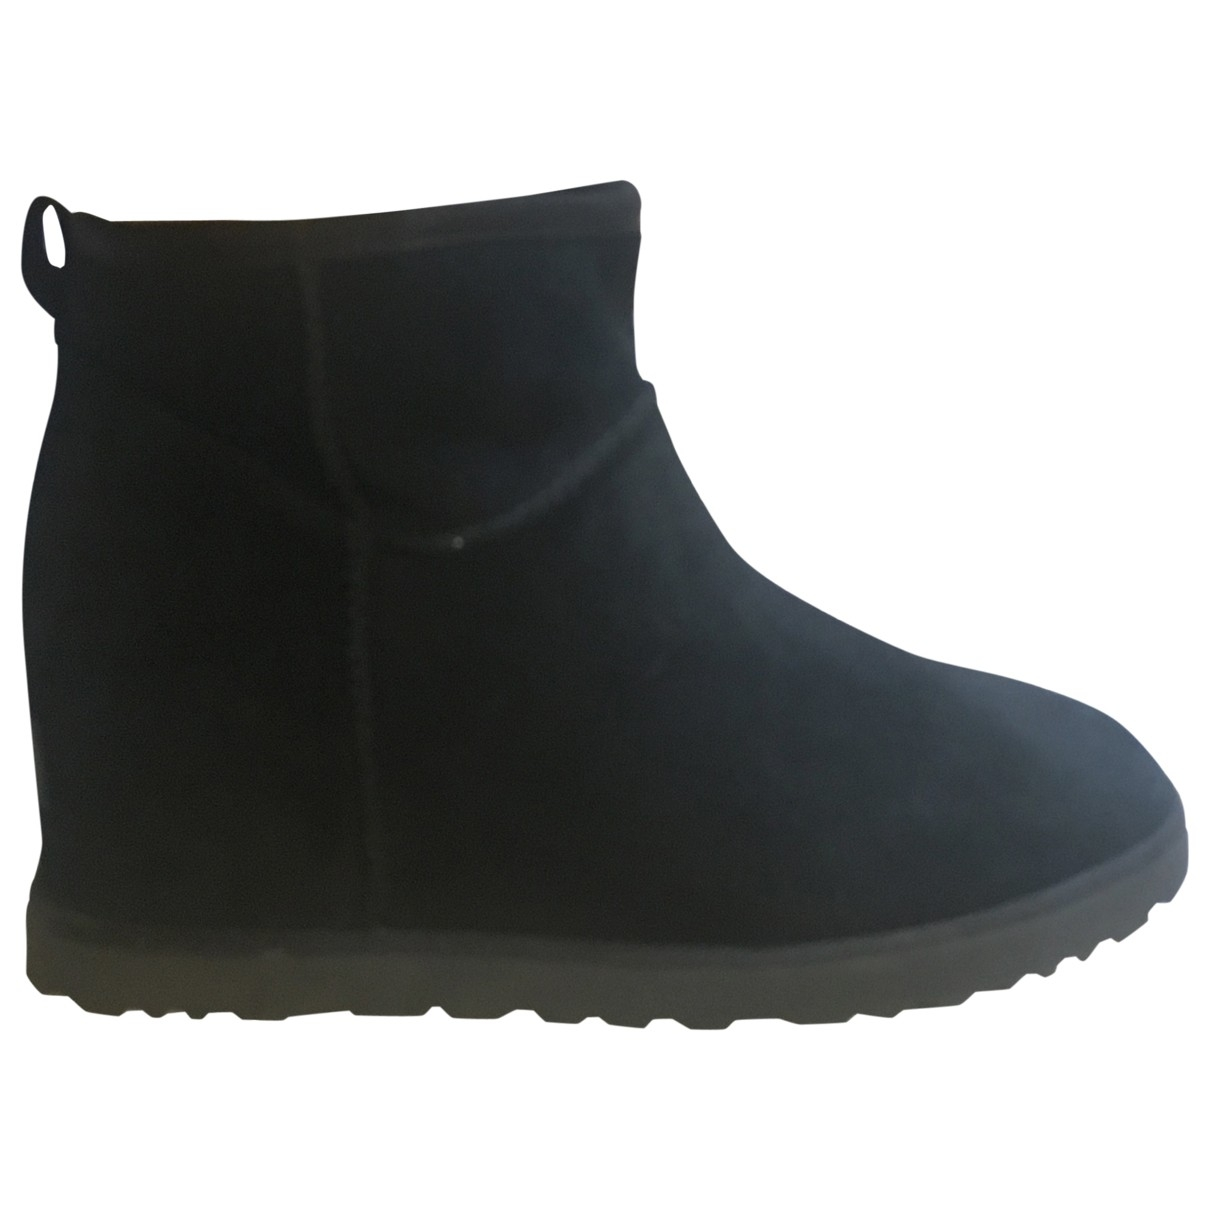 Ugg \N Black Suede Ankle boots for Women 40 EU